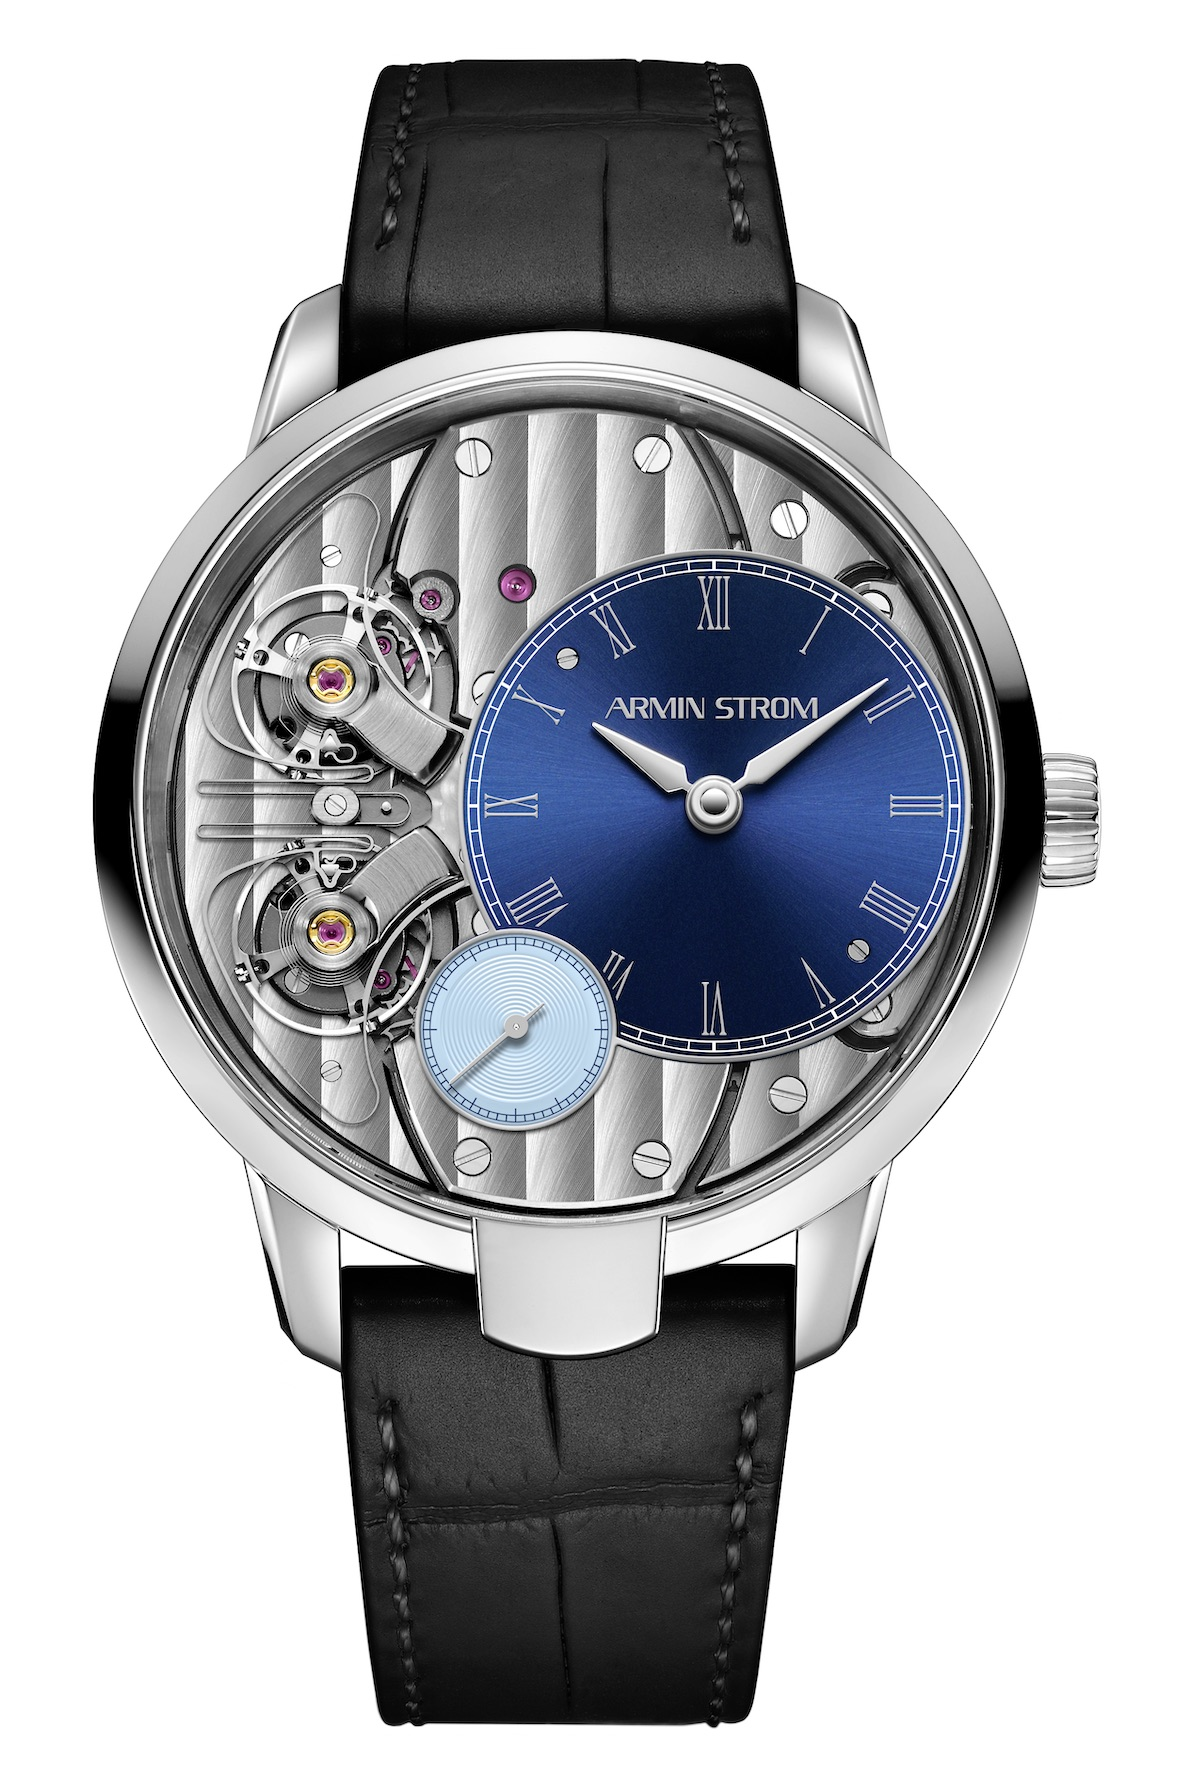 Armin Strom Pure Resonance Only watch 2019